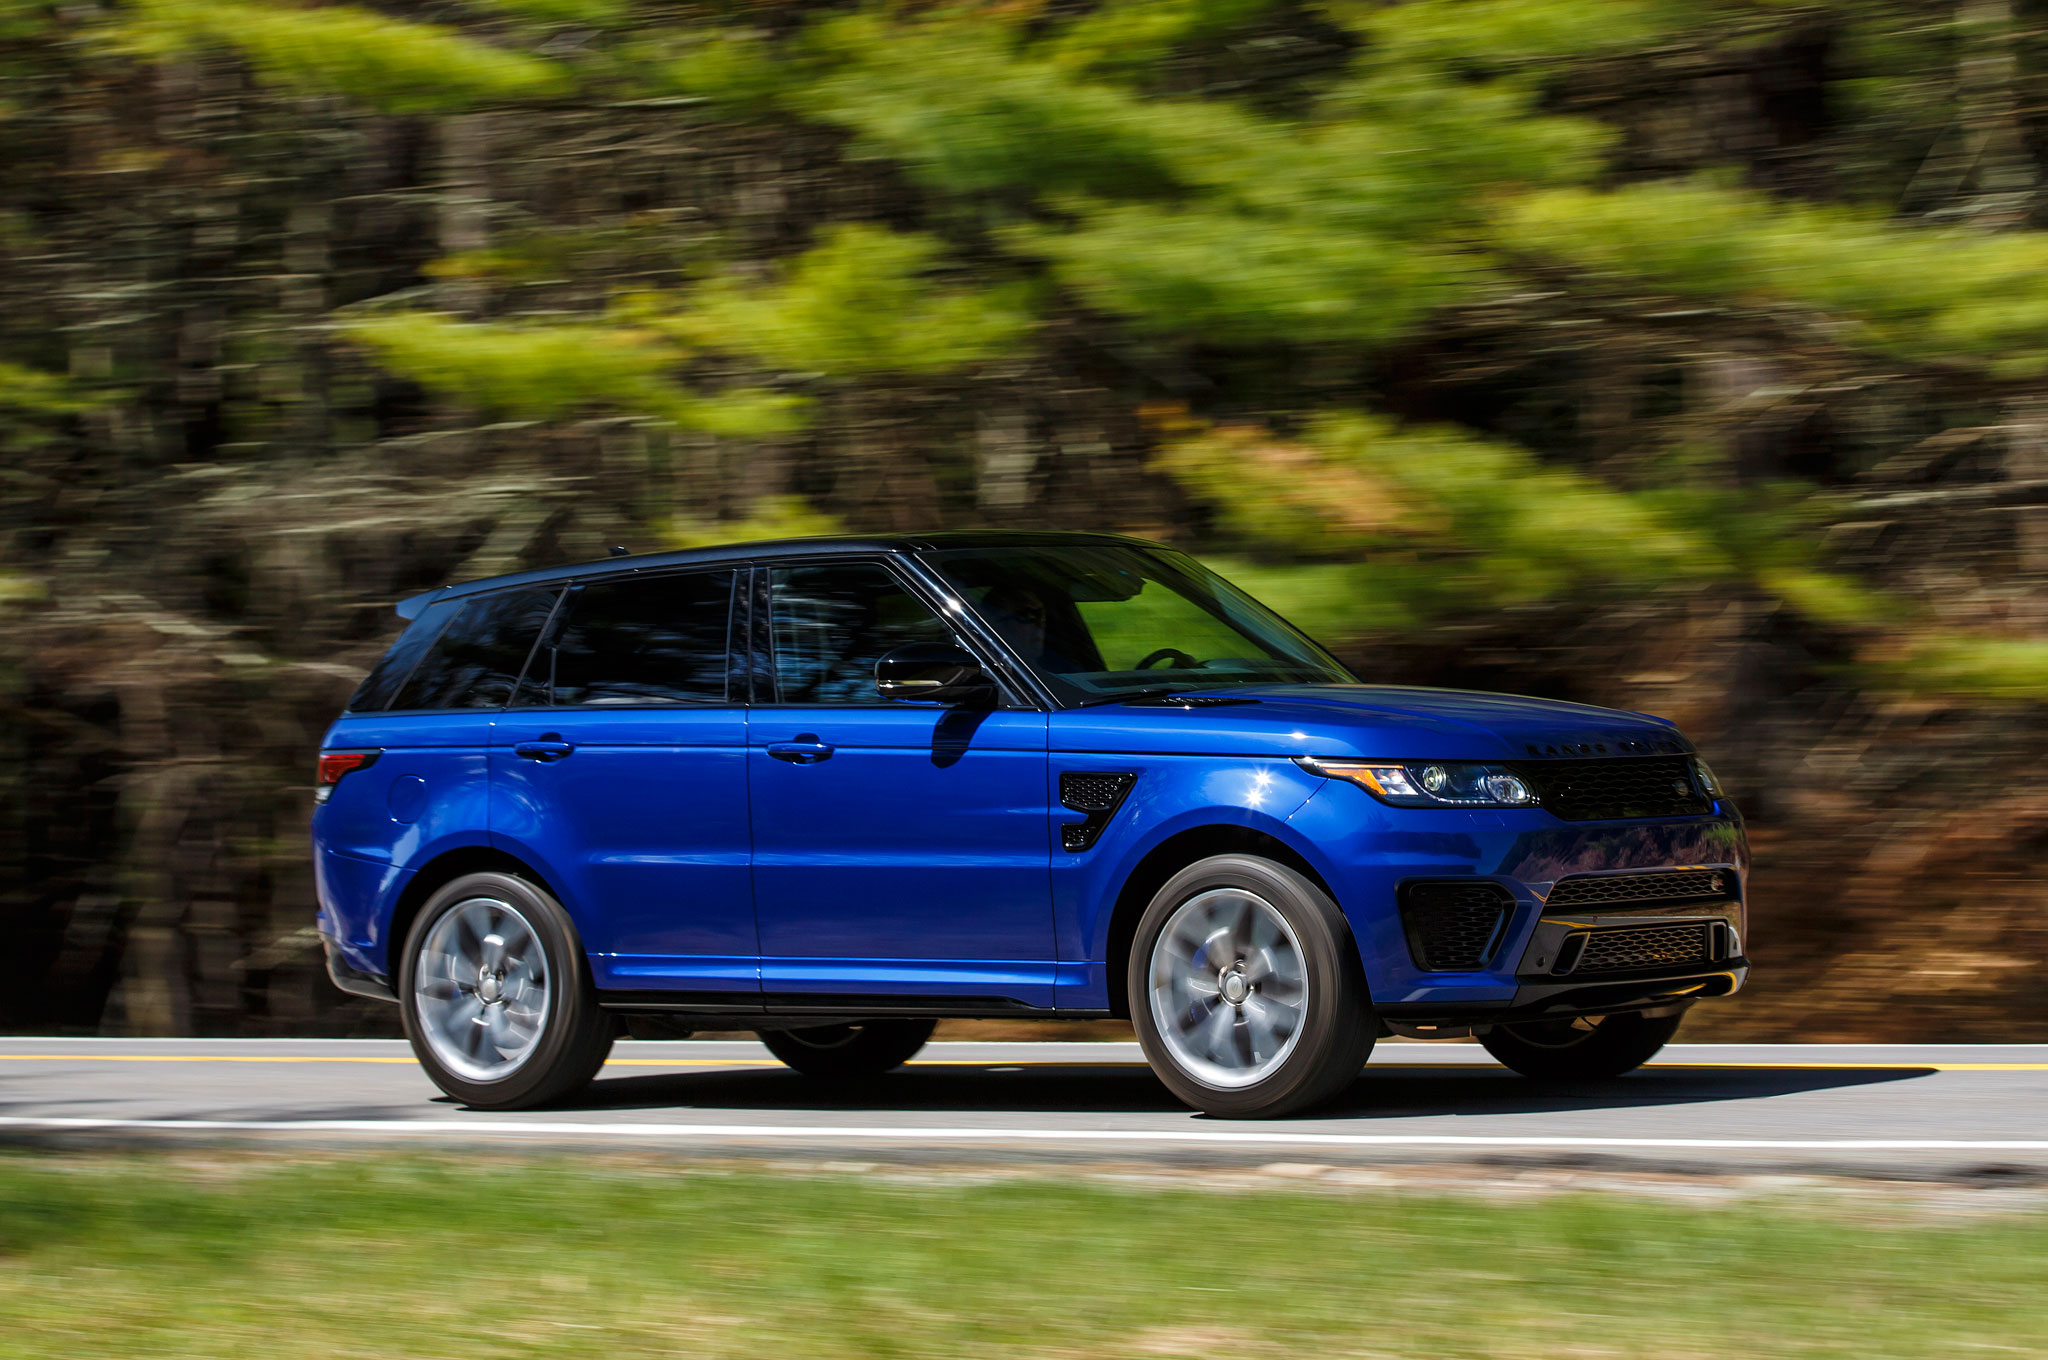 Report Range Rover Considering All Electric SUV